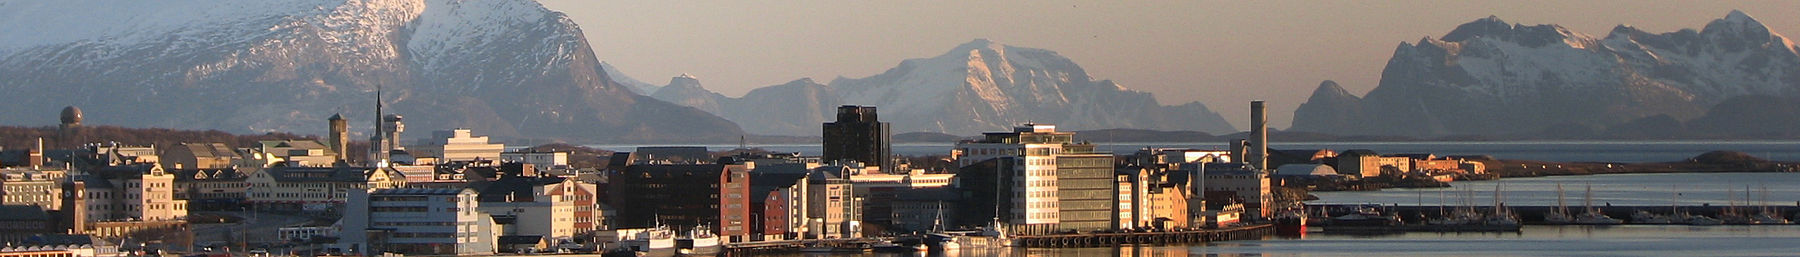 Bodo banner Panorama city with mountains.jpg